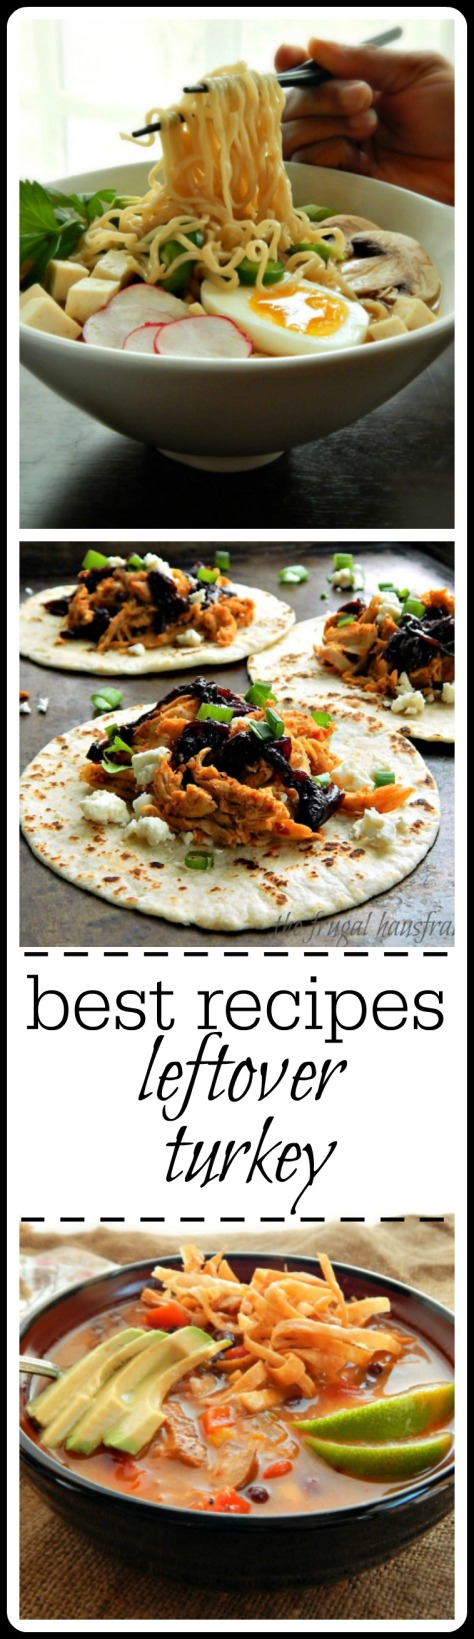 leftover turkey: over 40 of the best ways to use leftover turkey from around the globe. Down home comfort dishes along with gourmet finds